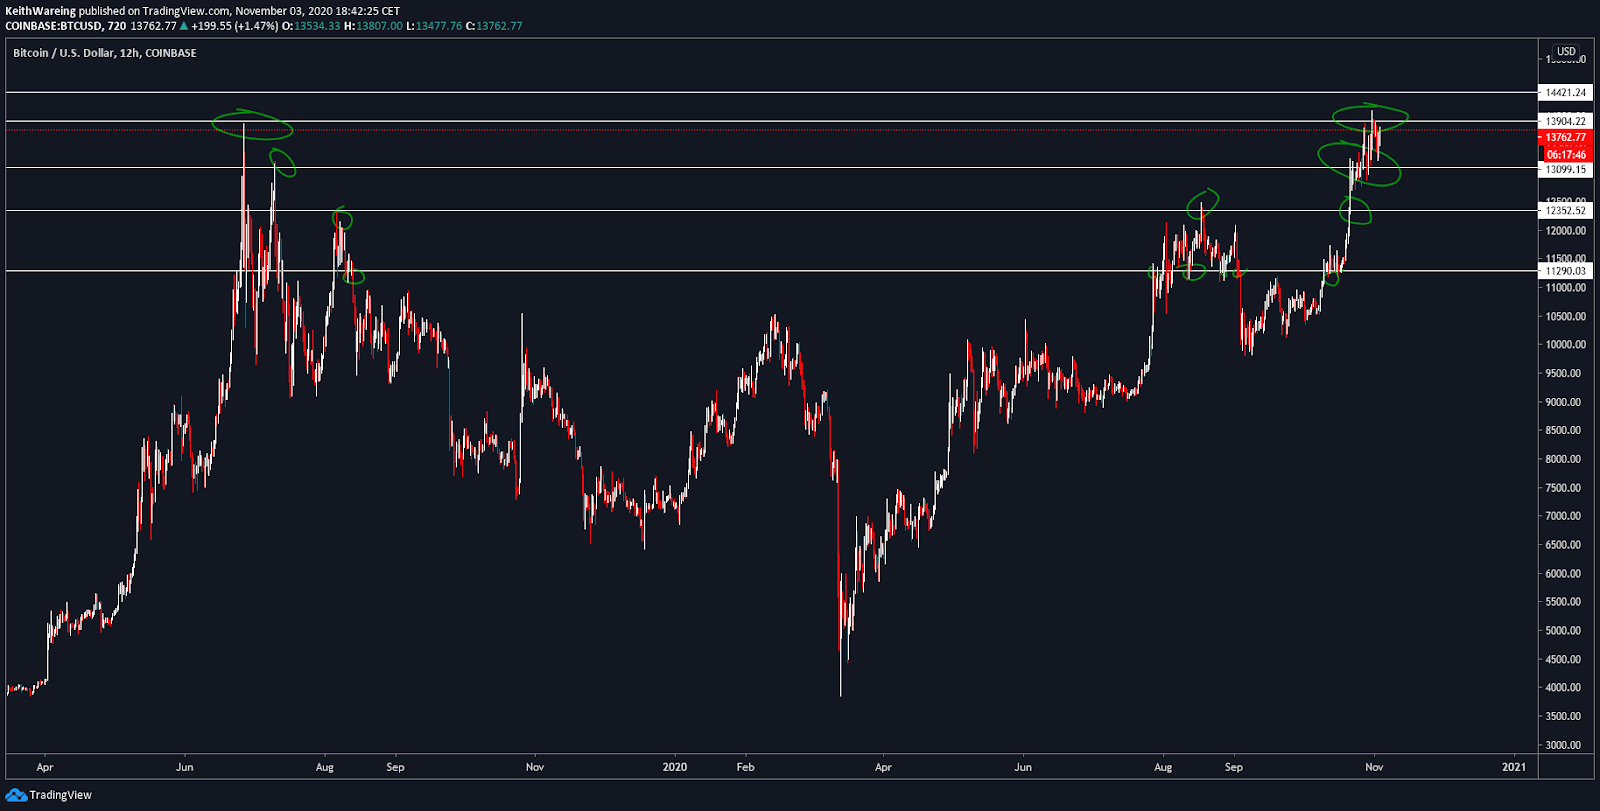 BTC/USD 12-hour chart